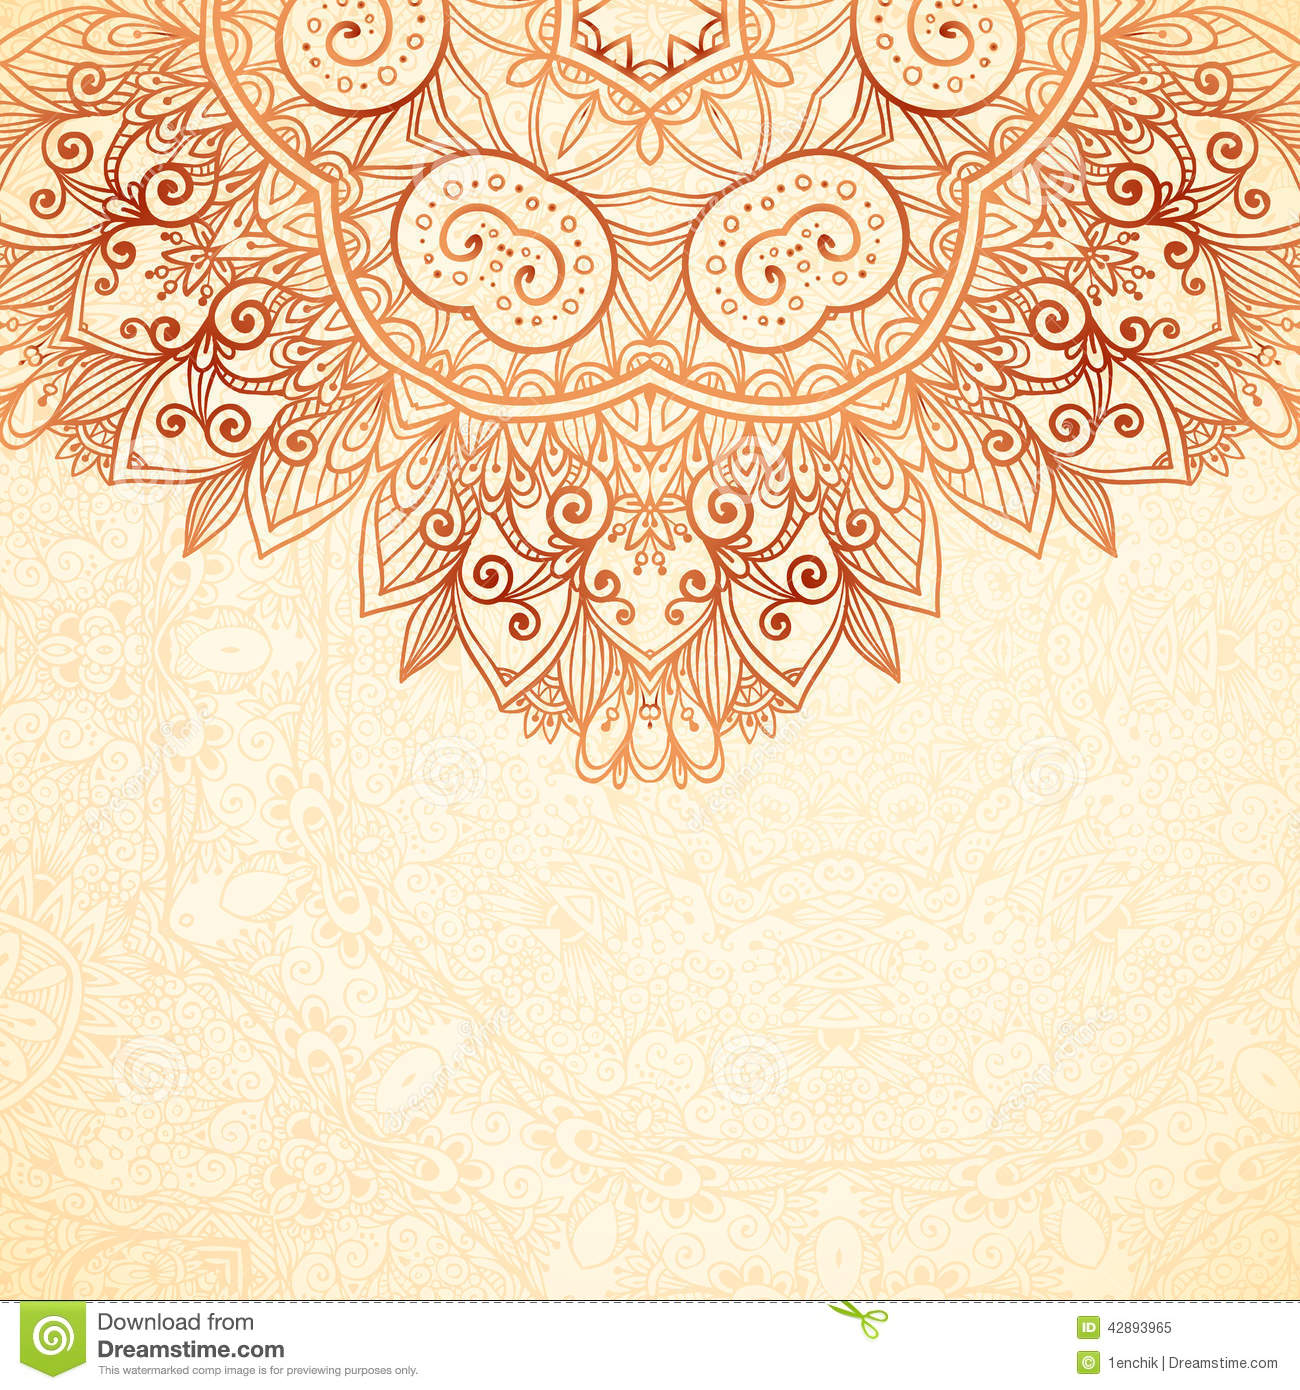 Ornate vintage vector background in mehndi style royalty free stock - Royalty Free Vector Download Ornate Vintage Background In Mehndi Style Stock